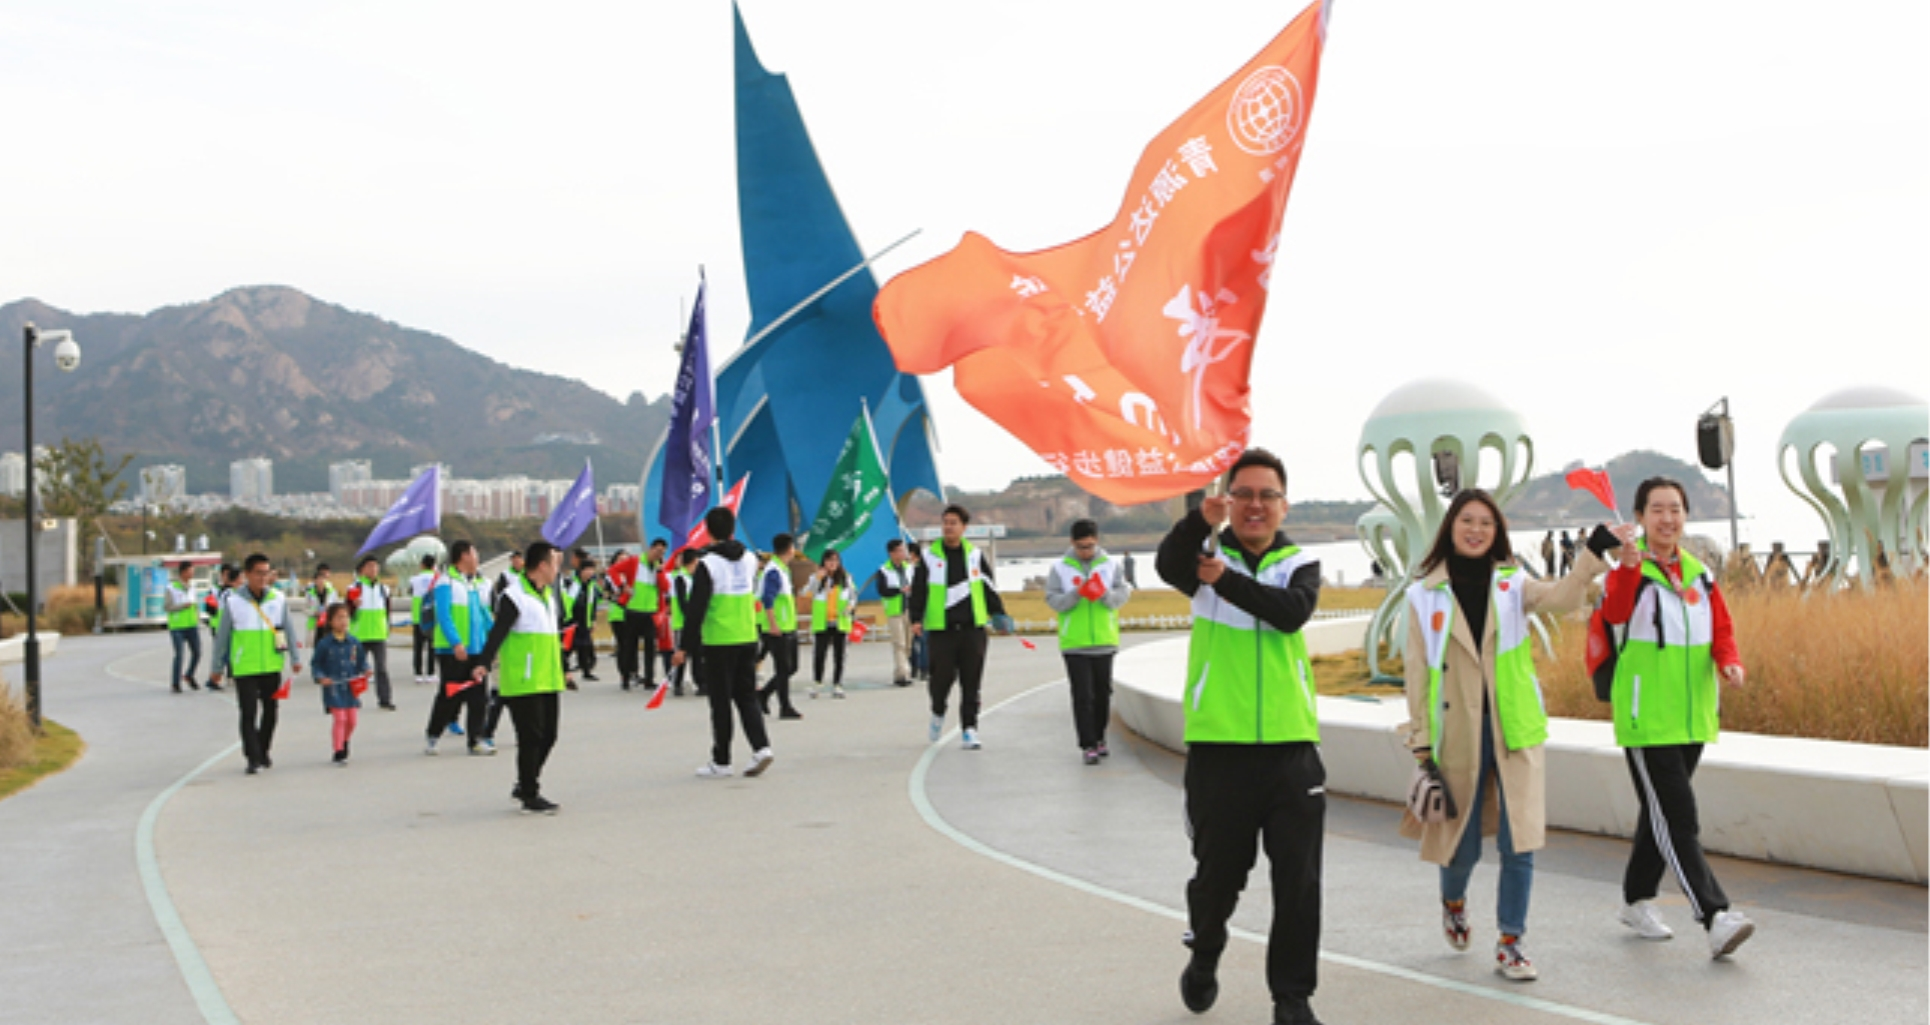 Walk for love:The 4th SHINE public health walking activity was held successfully